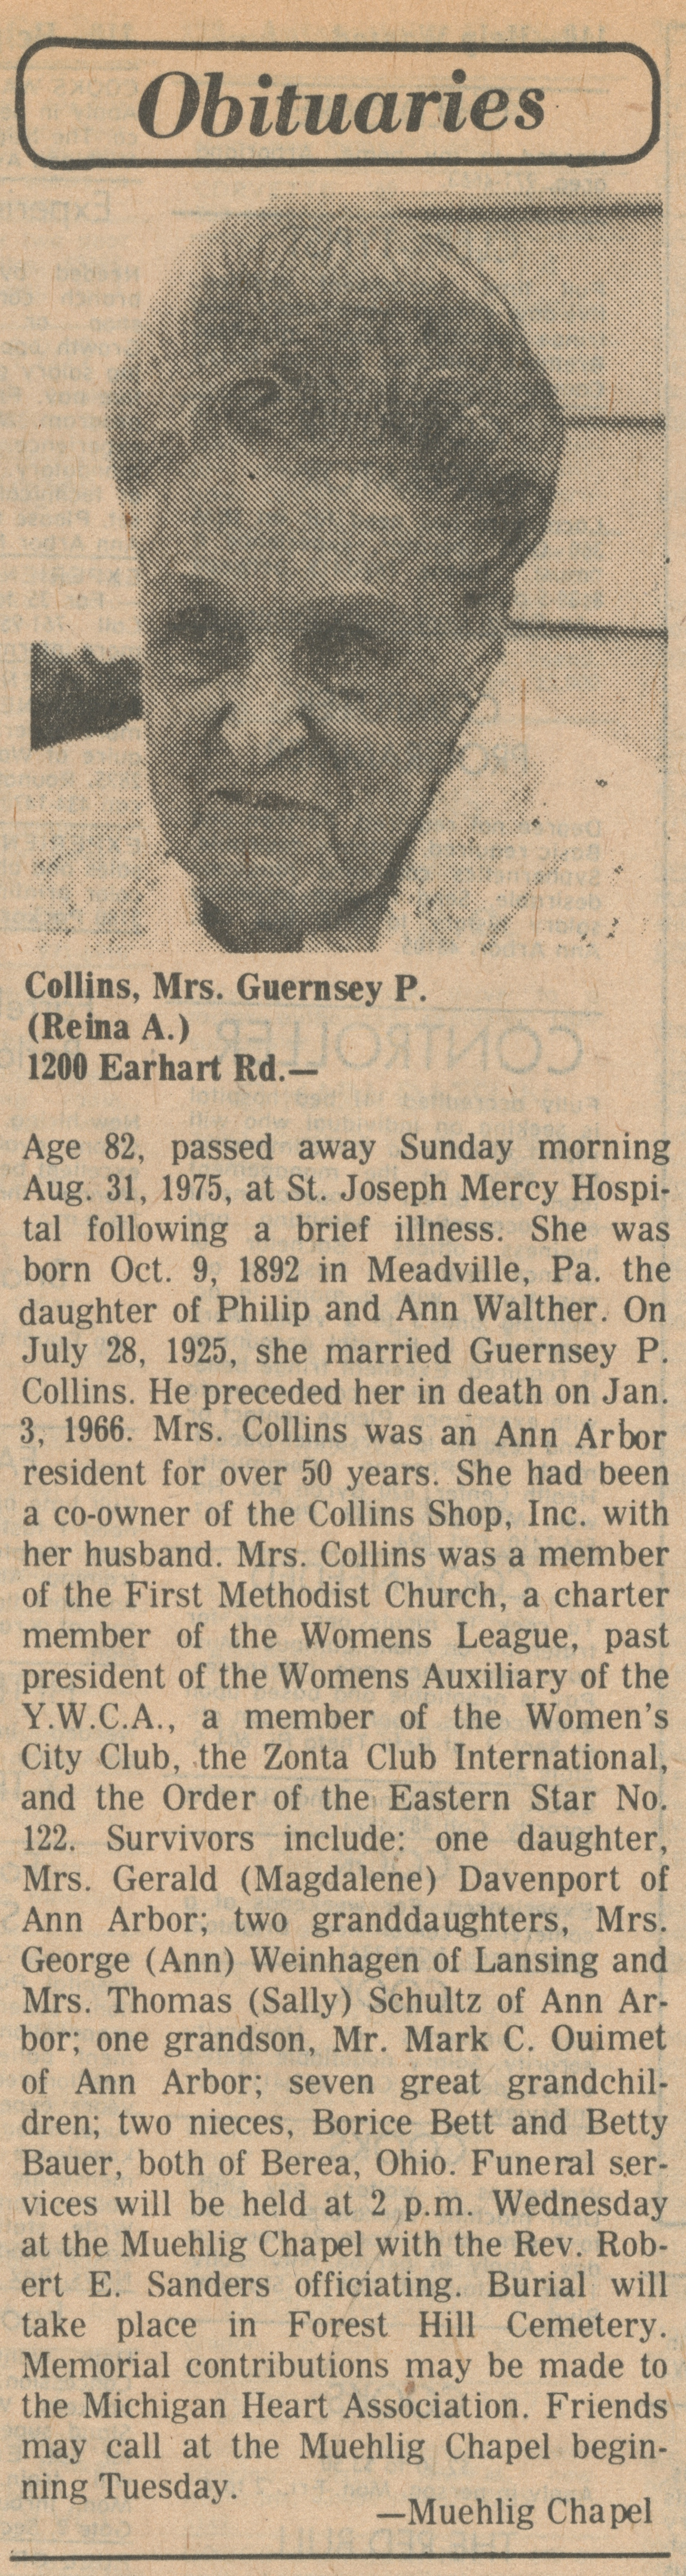 Collins, Mrs. Guernsey P. (Reina A.) image